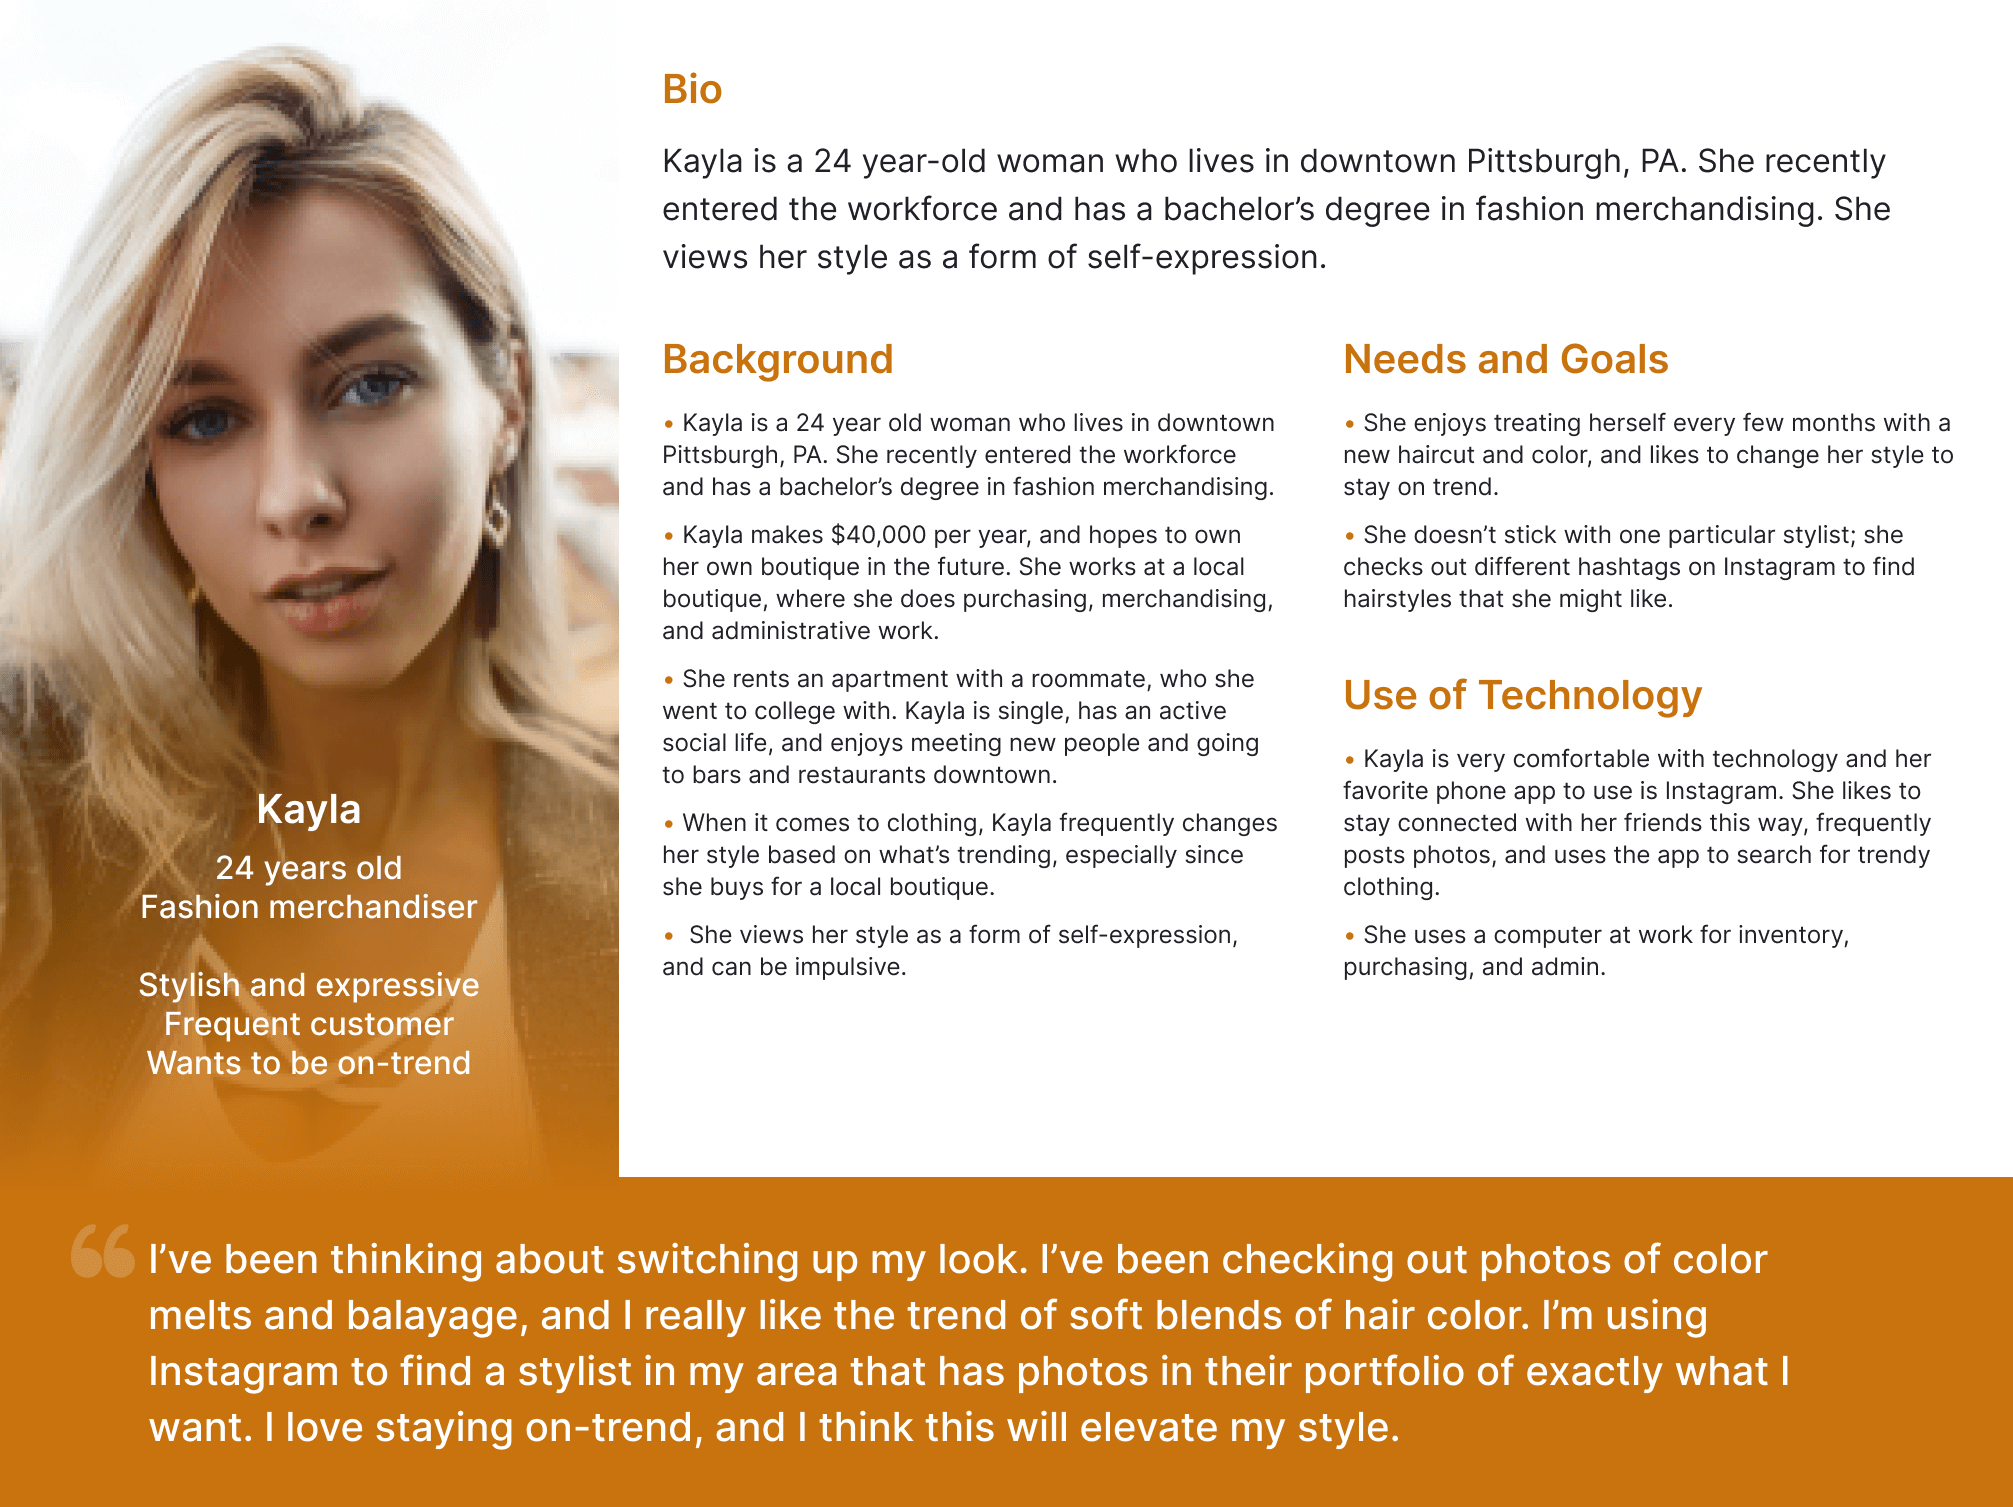 Persona worksheet for Kayla with a bio, background, needs and goals, and use of technology.